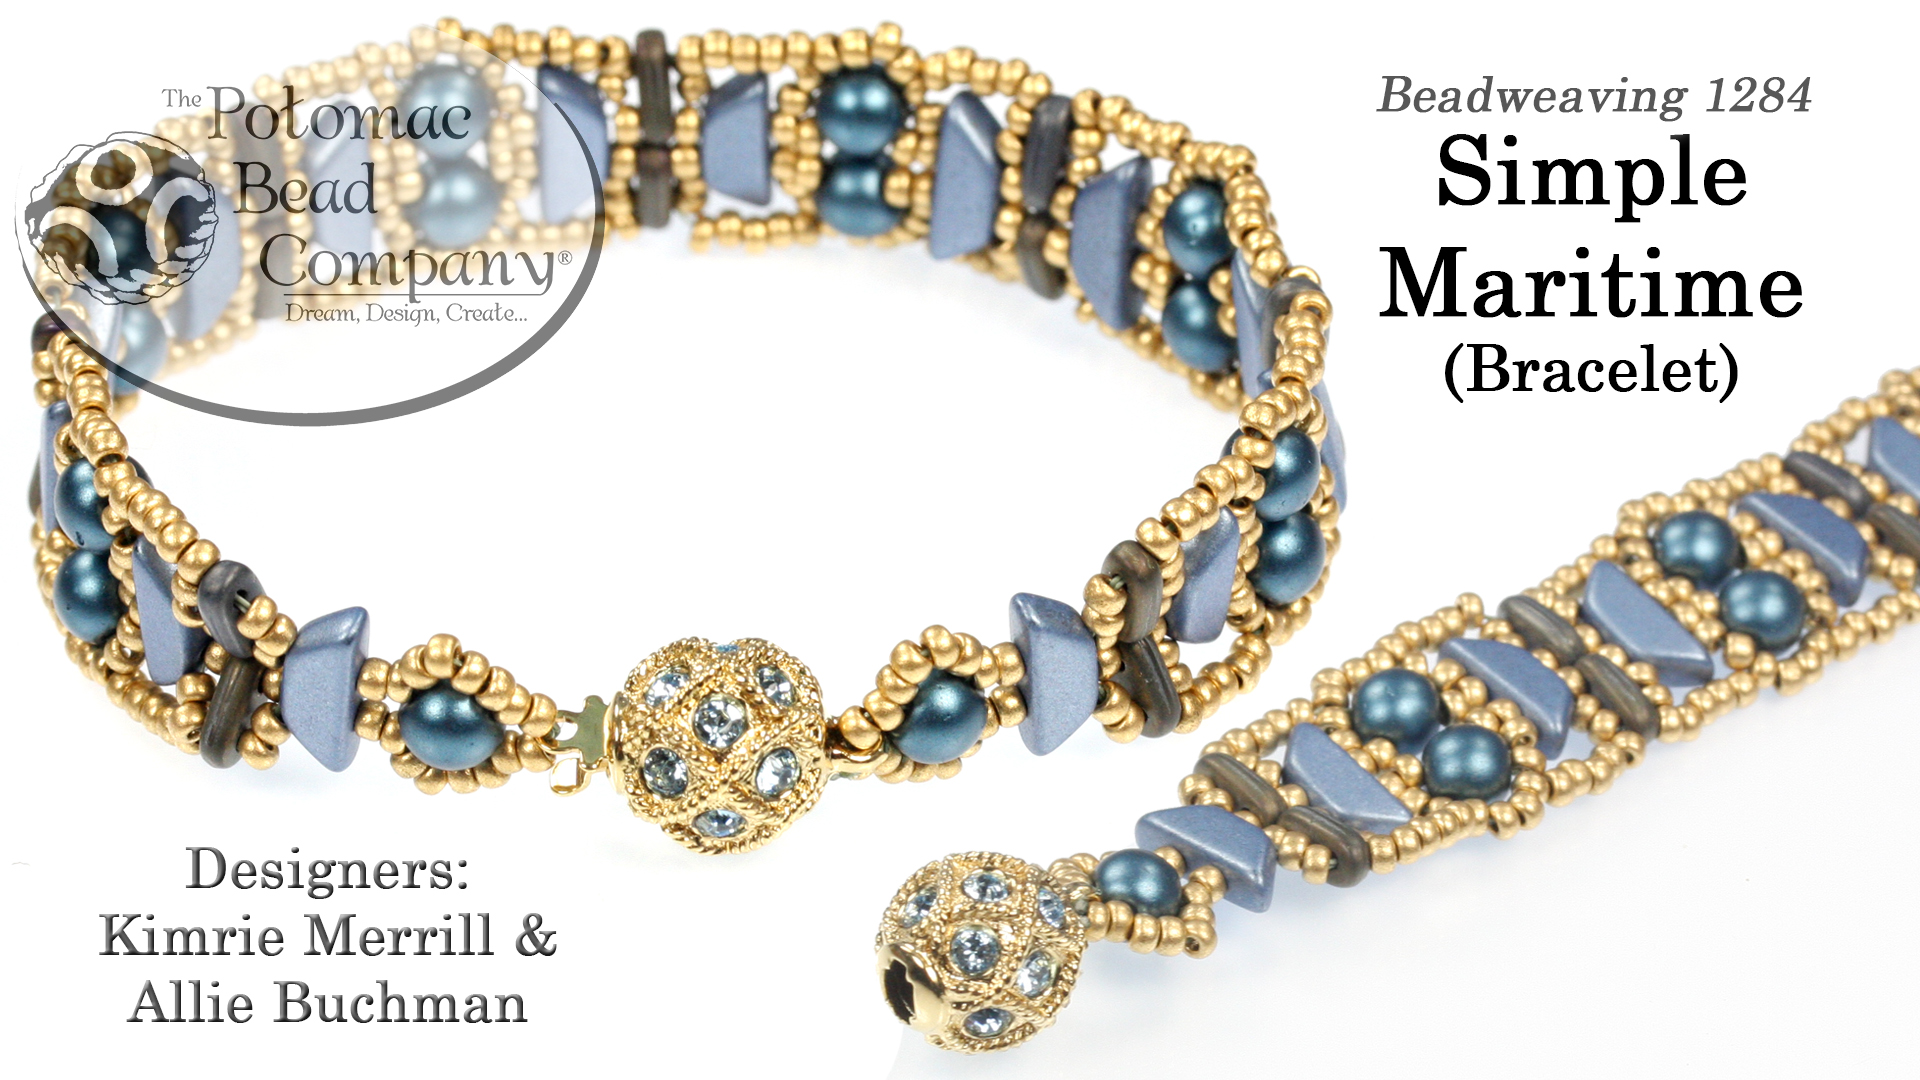 How to Bead Jewelry / Videos Sorted by Beads / Par Puca® Bead Videos / Simple Maritime Bracelet Tutorial